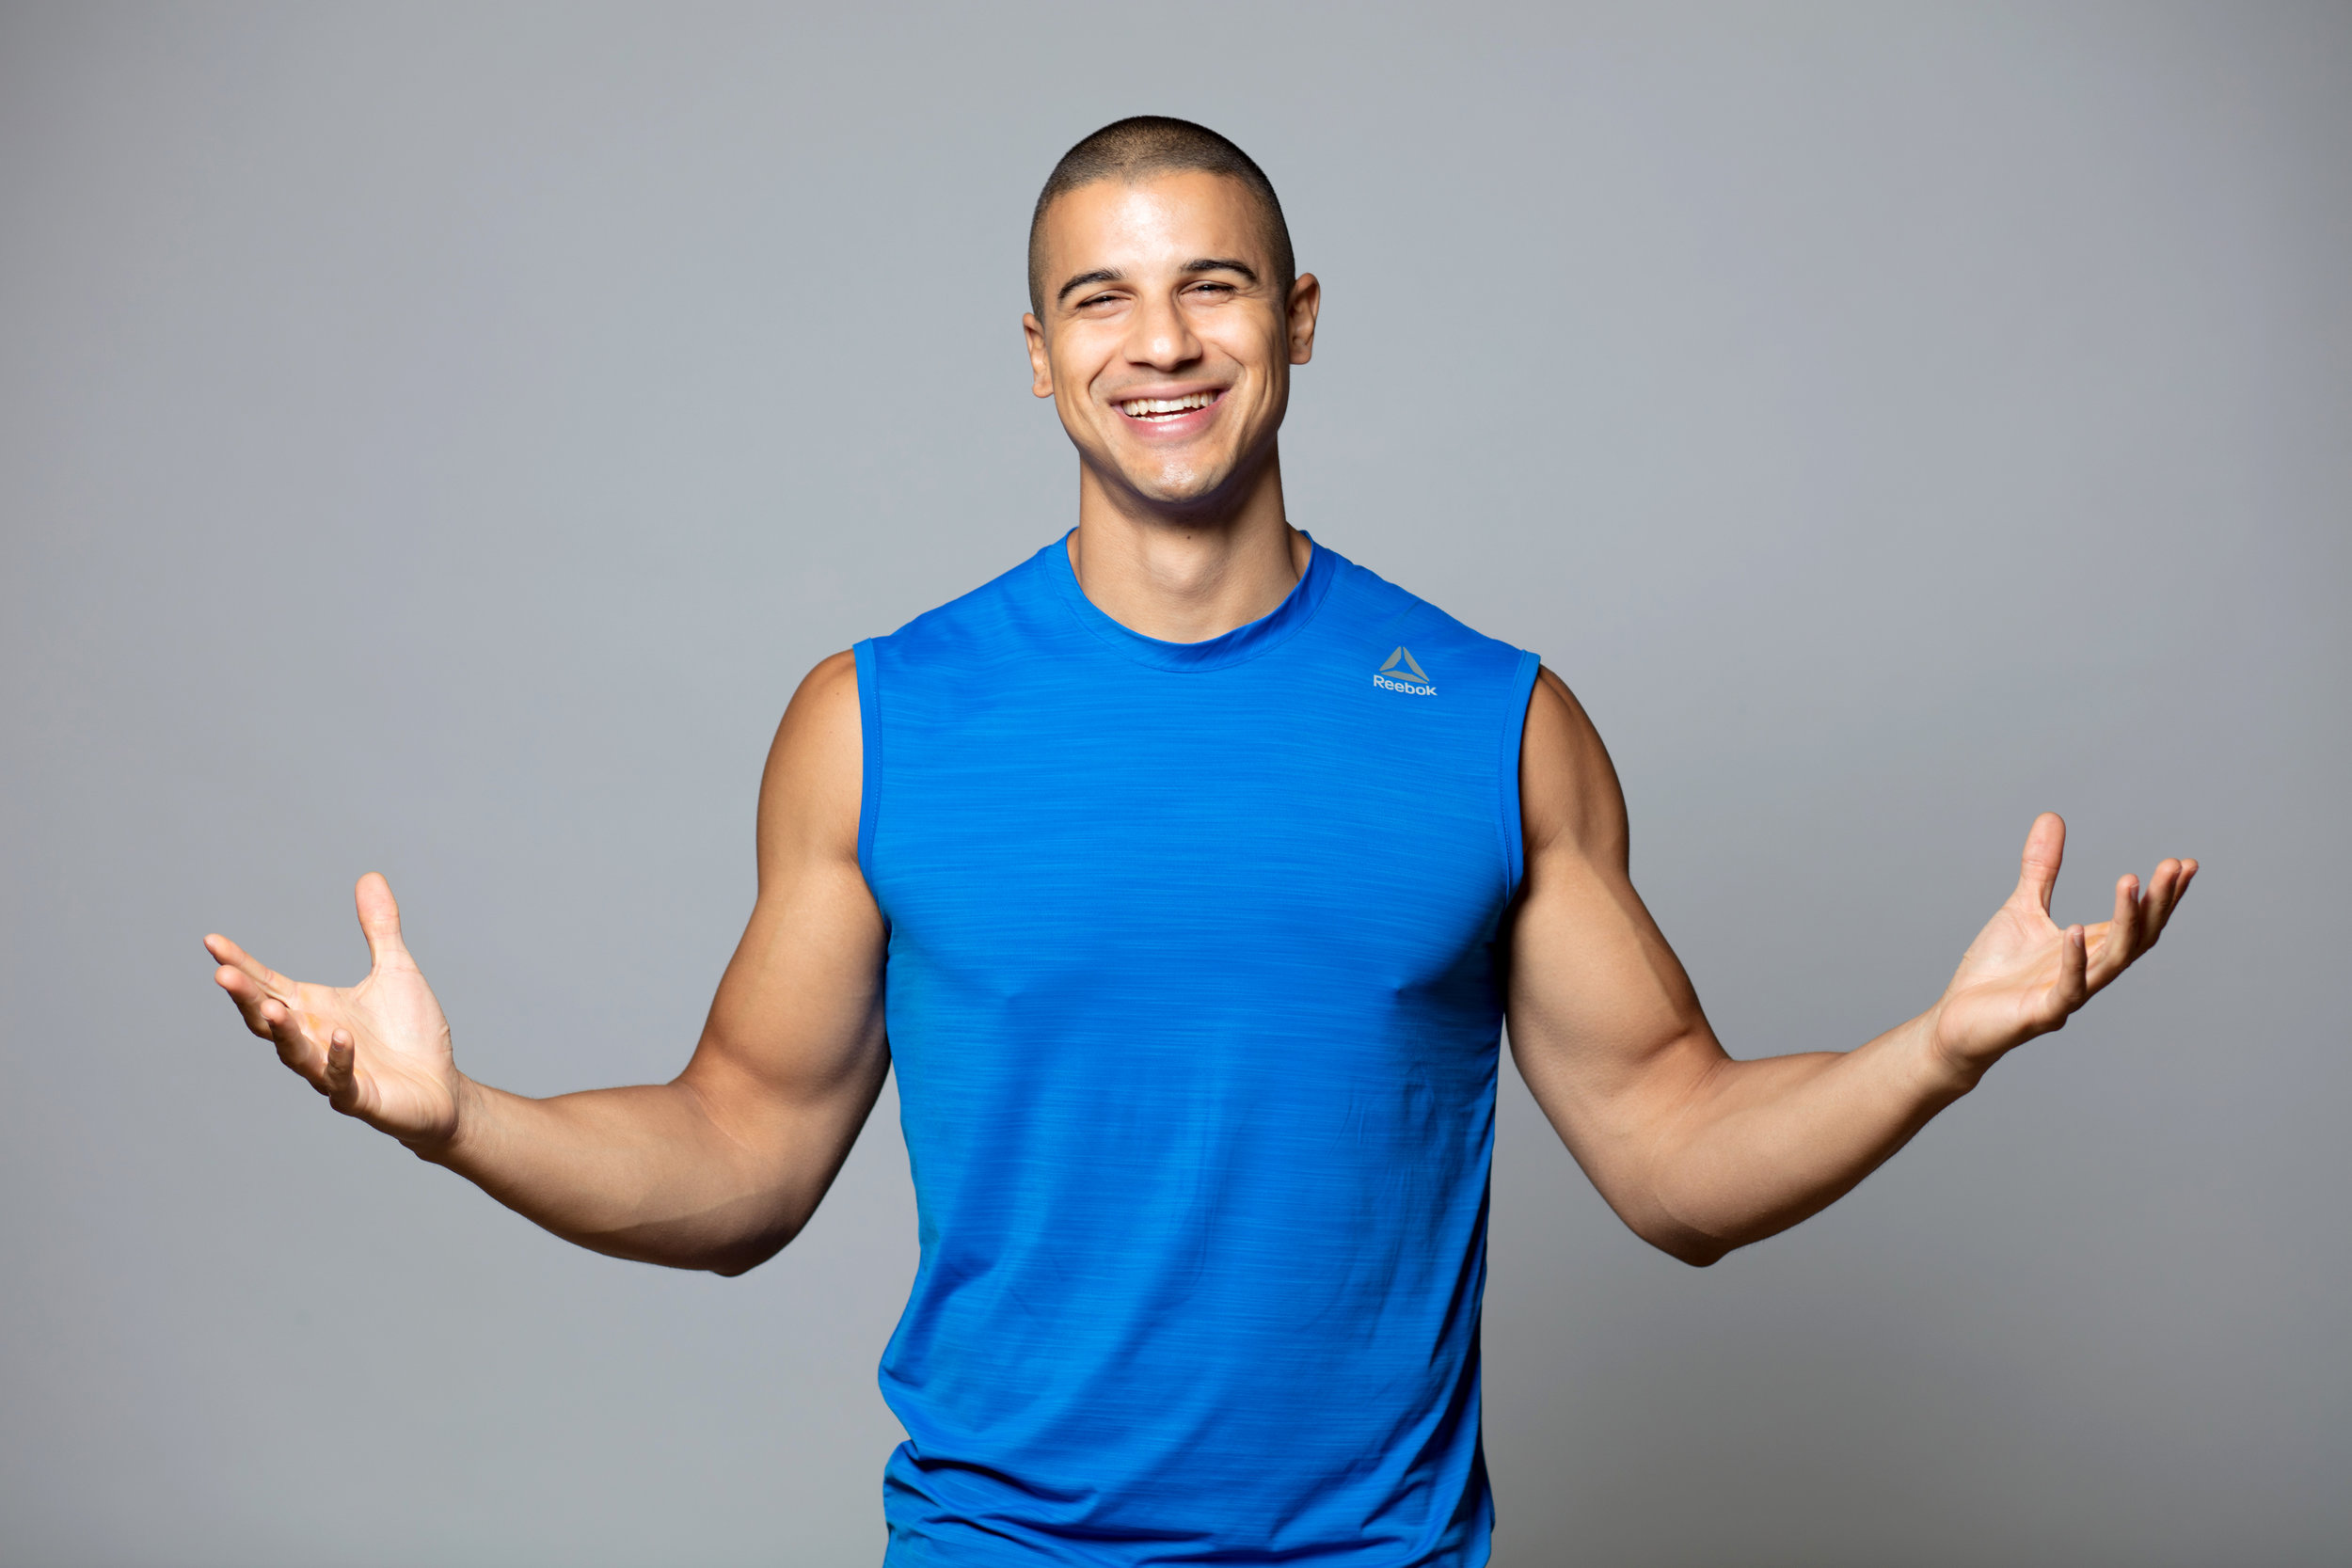 Lee Constantinou is an Advanced Personal Trainer and Celebrity Personal Trainer based at Blueprint Fitness, Whetstone, N20, between Barnet & Finchley